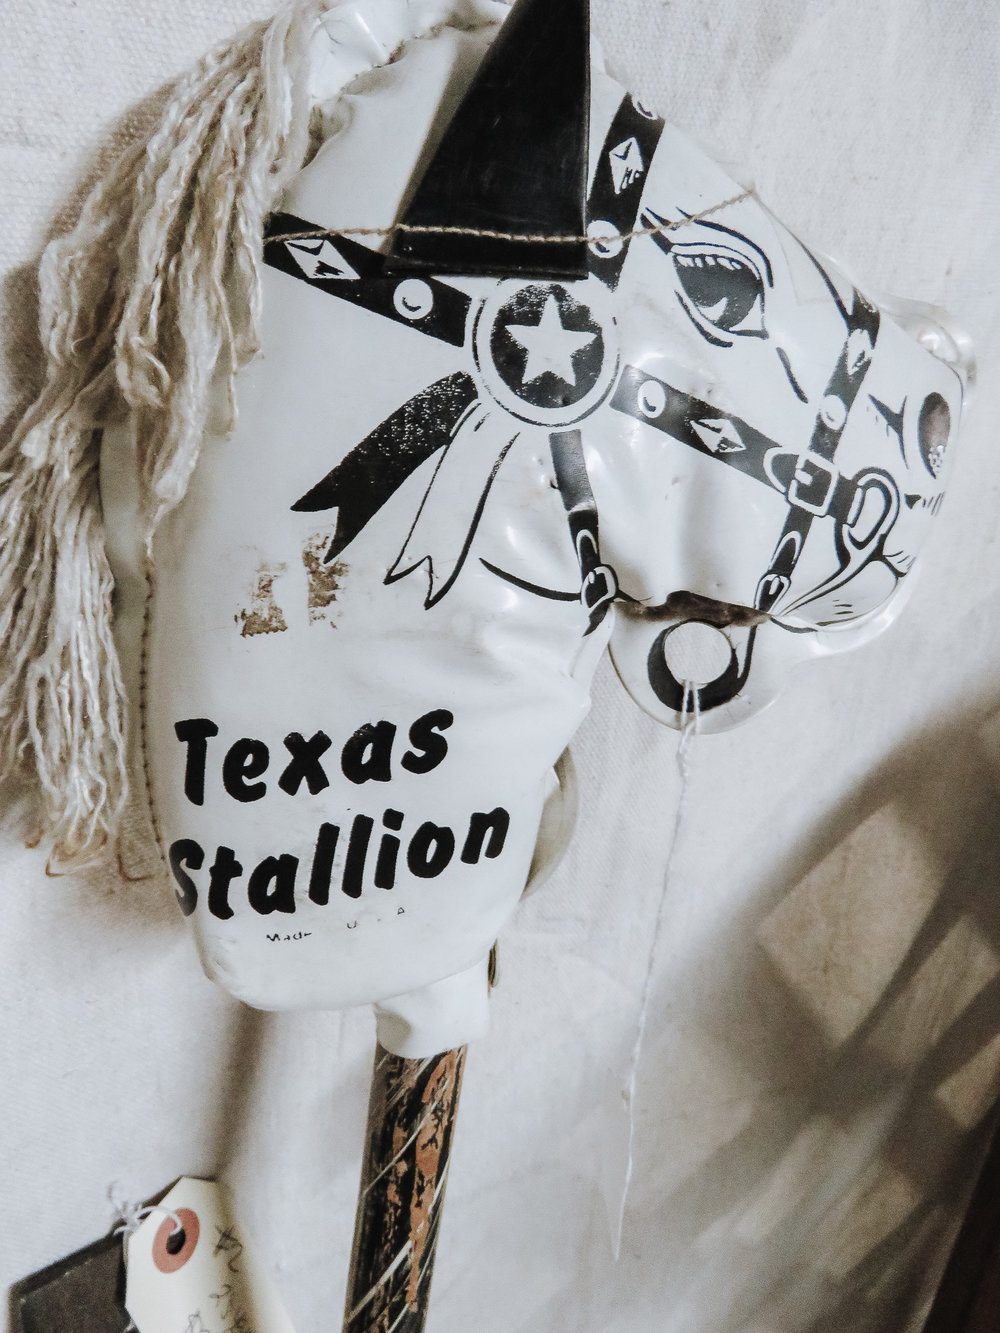 For The Kiddos - There are a lot of Texas themed toys to make road trips a little more fun for the whole gang! This Texas Stallion Stick Horse would make a great toy to play with at rest stops along the way!